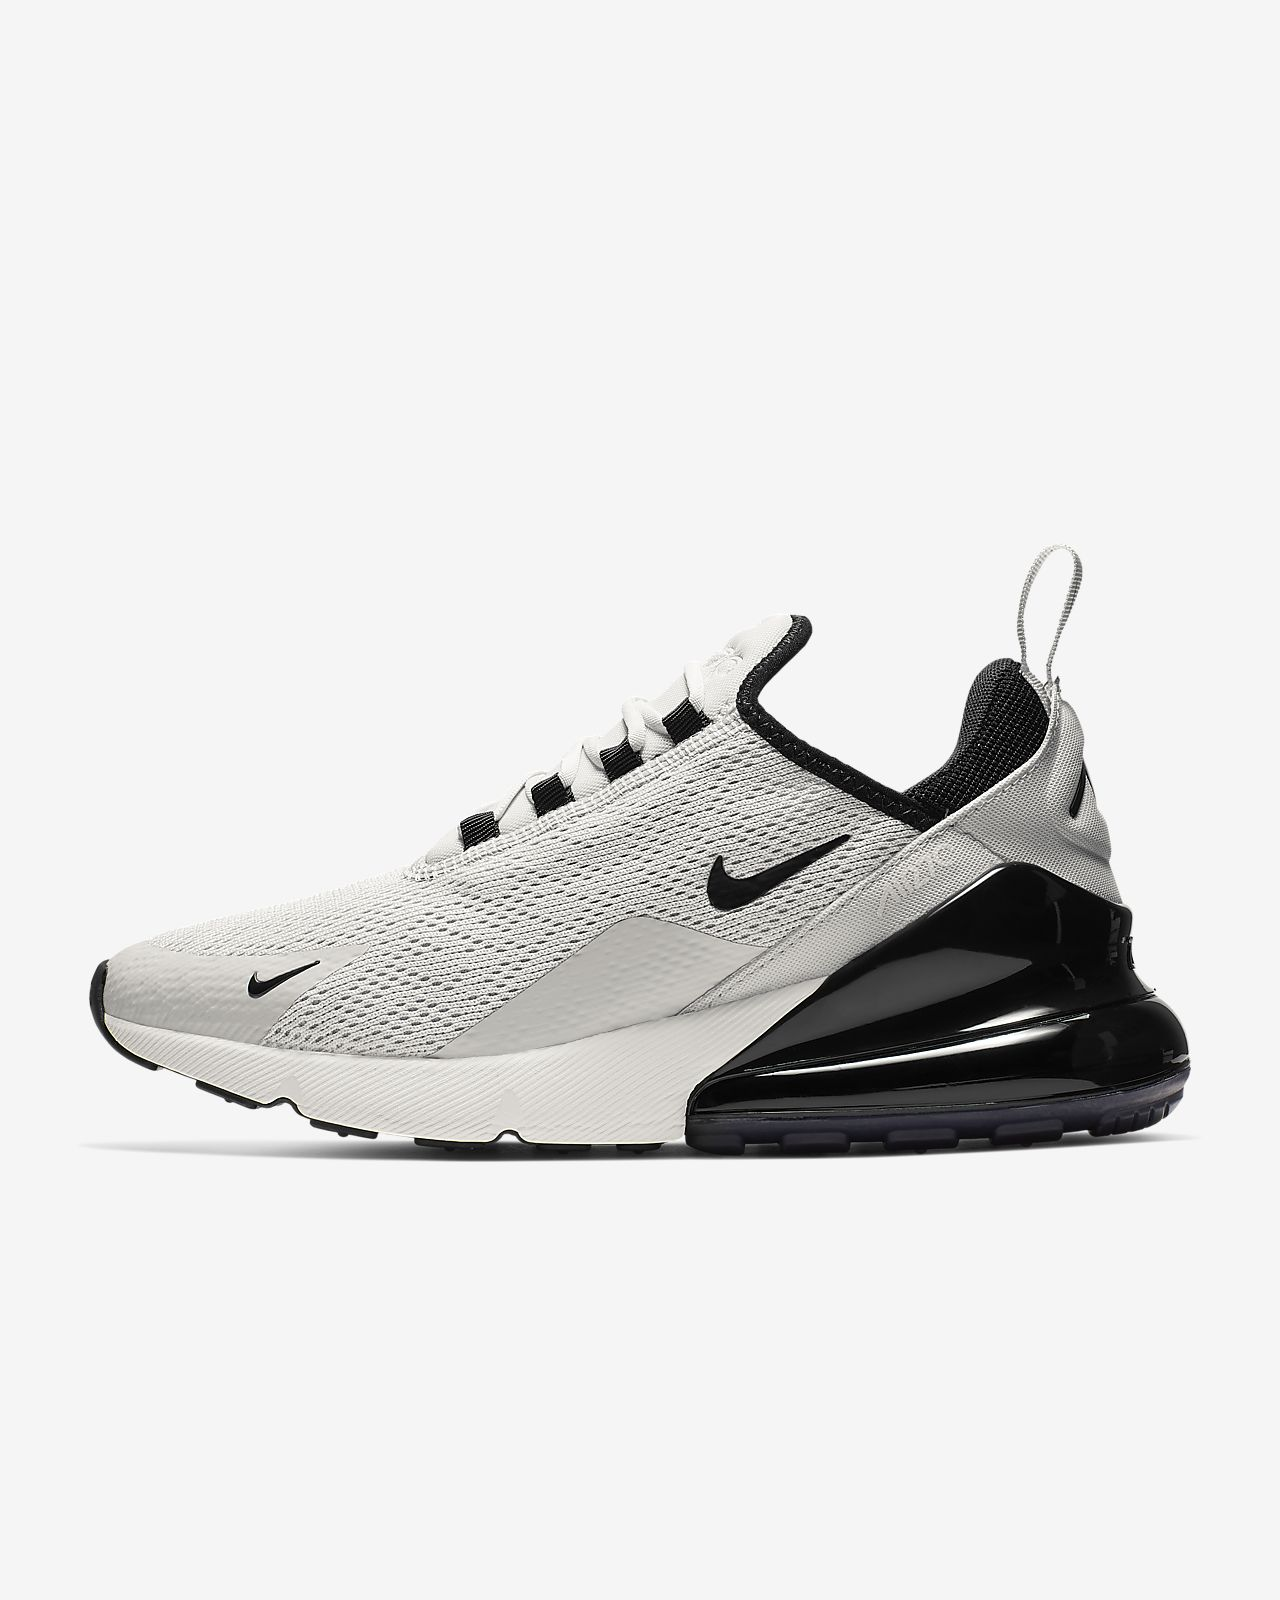 cheaper f3c4c 6cc41 Nike Air Max 270